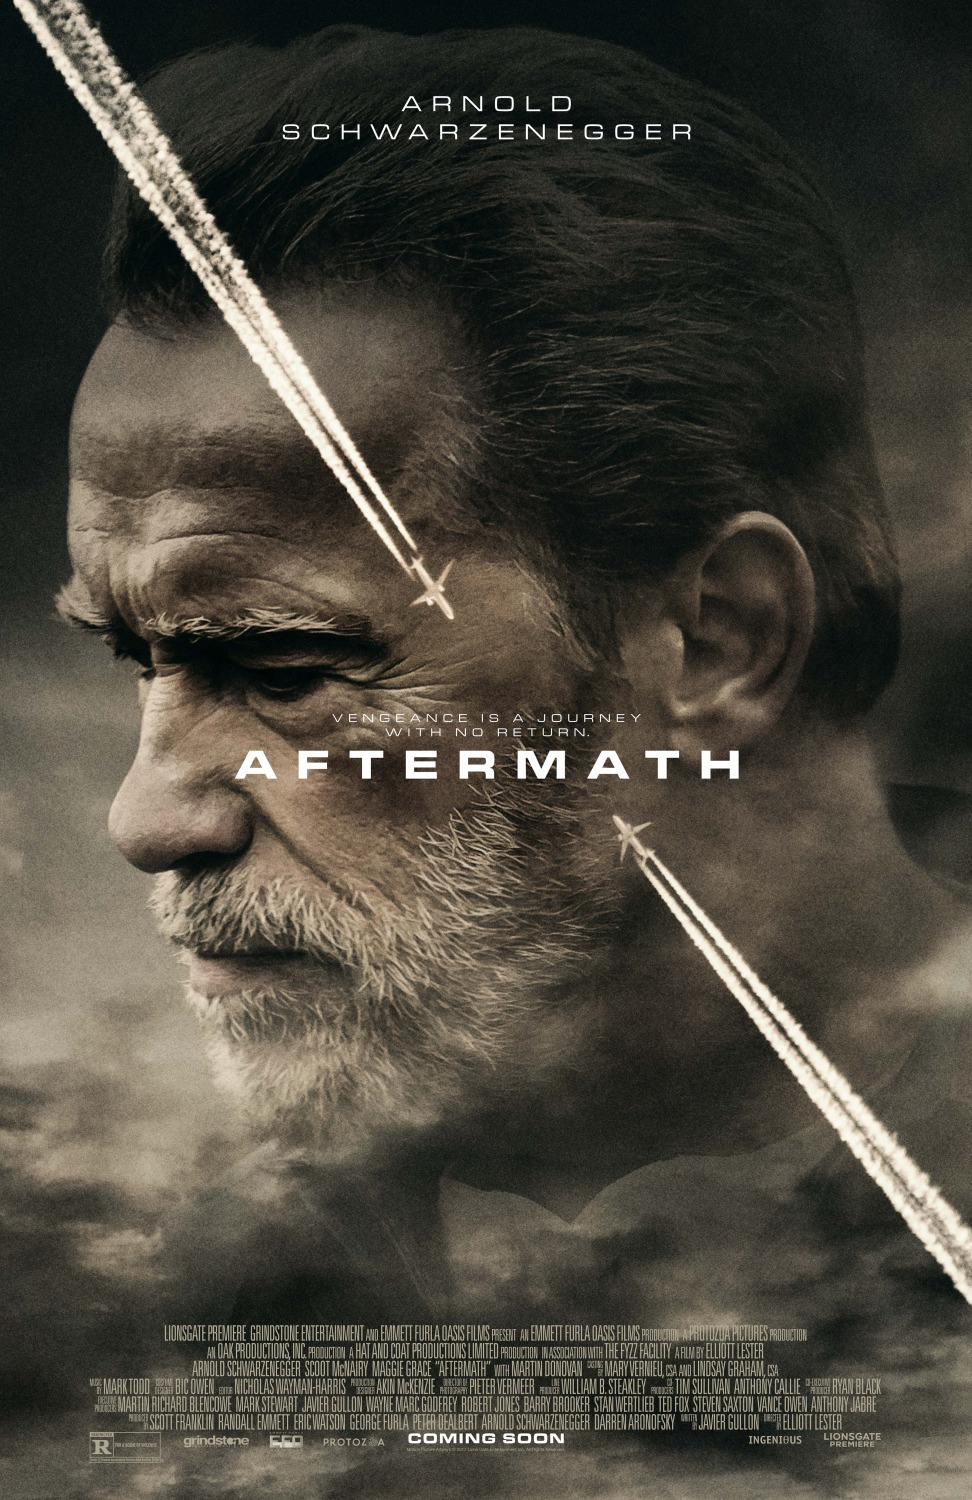 Extra Large Movie Poster Image for Aftermath